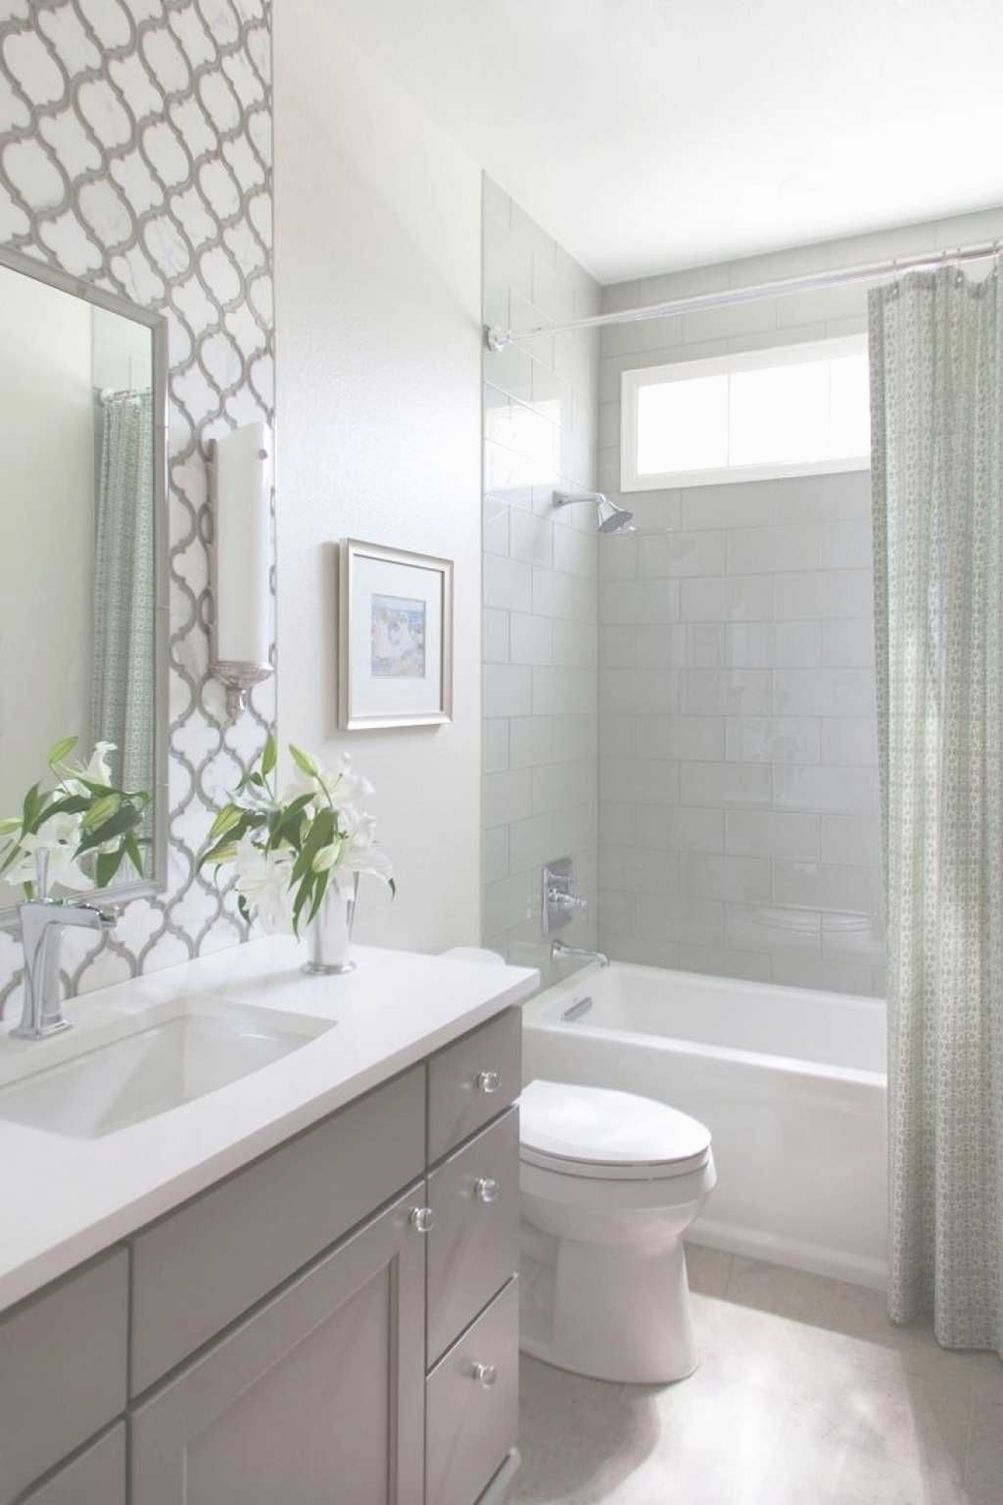 16+ Incredible Rustic Bathroom Remodel How To Build Ideas images